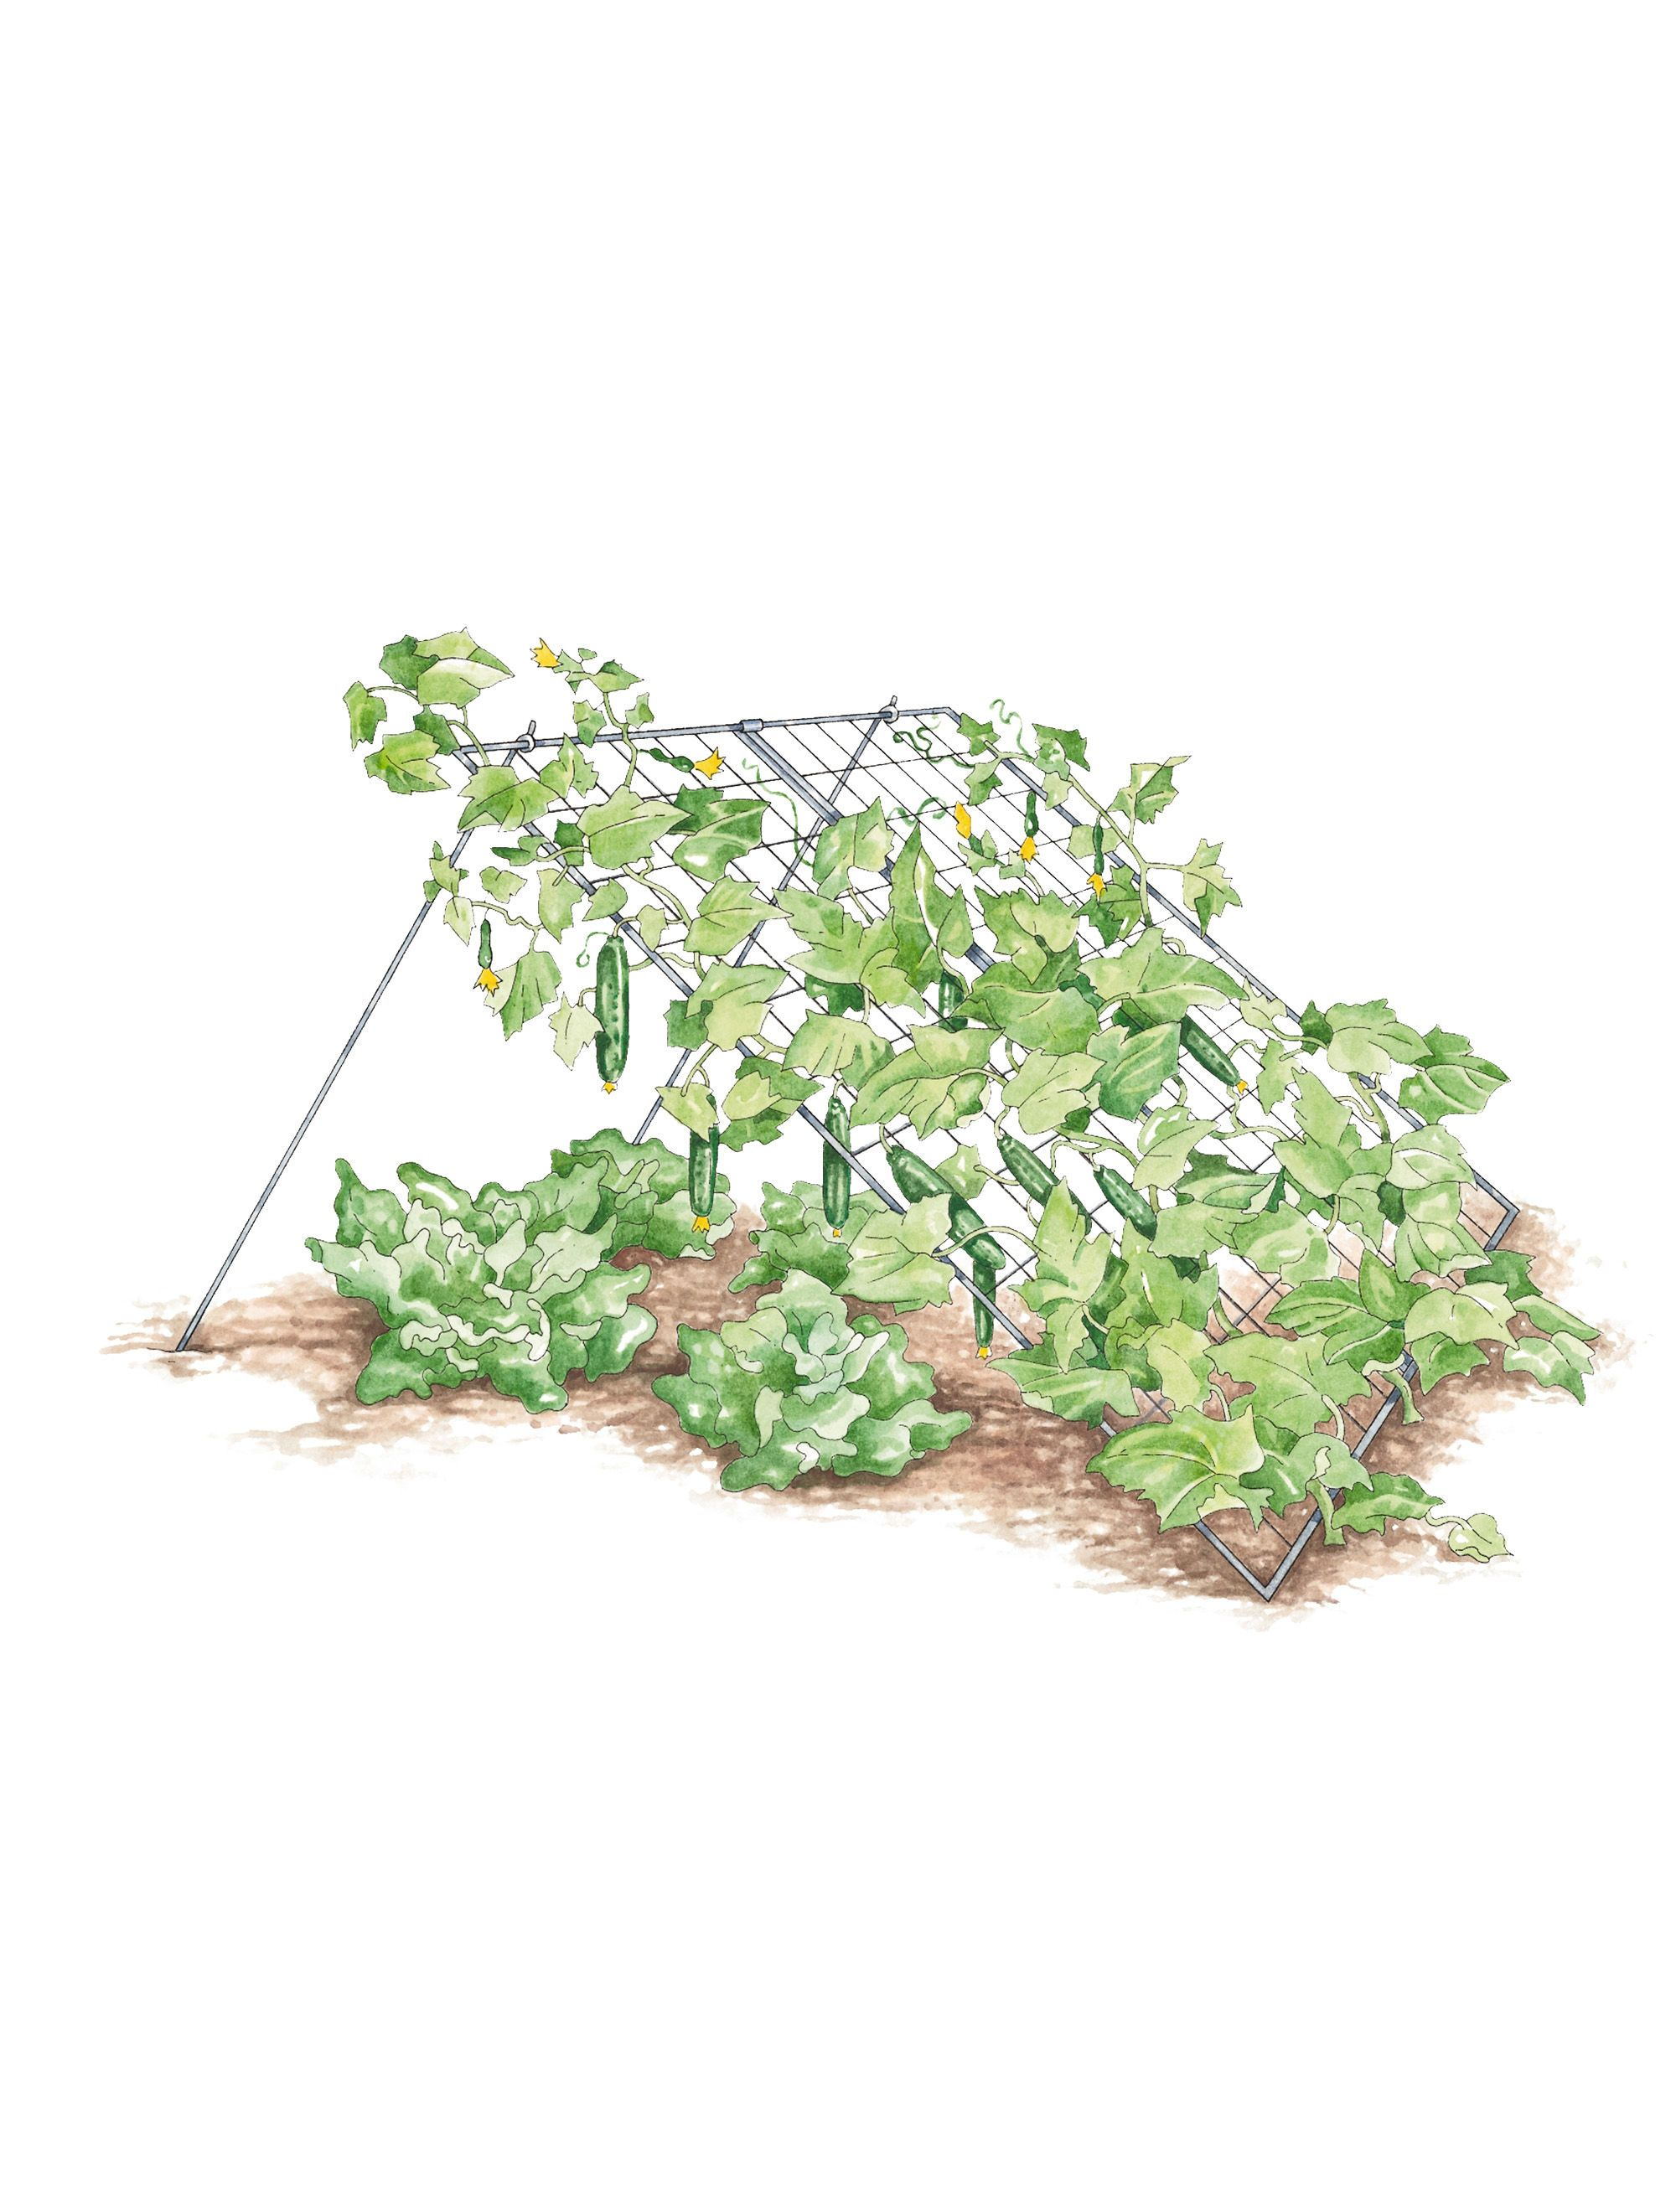 Cucumber Trellis - Large | Powder Coated Steel | Gardener's Supply [perhaps something I can make myself?]